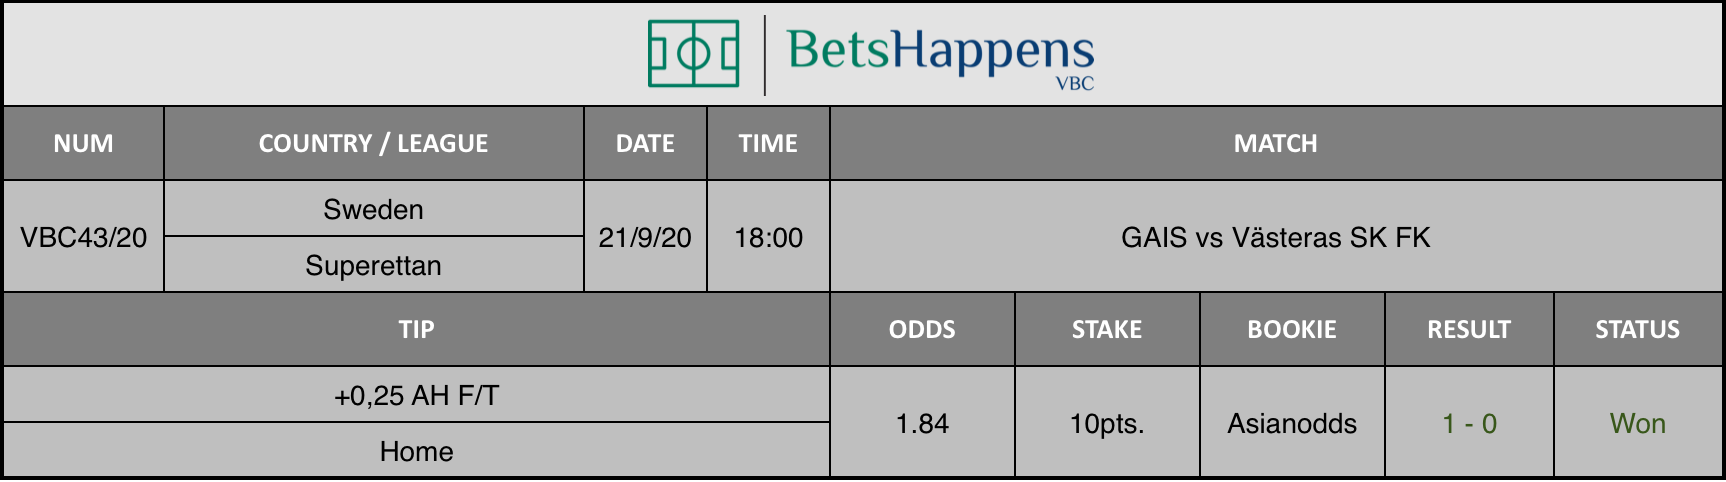 Results of our advice for the GAIS vs Västeras SK FK match where +0.25 AH F / T Home is recommended.